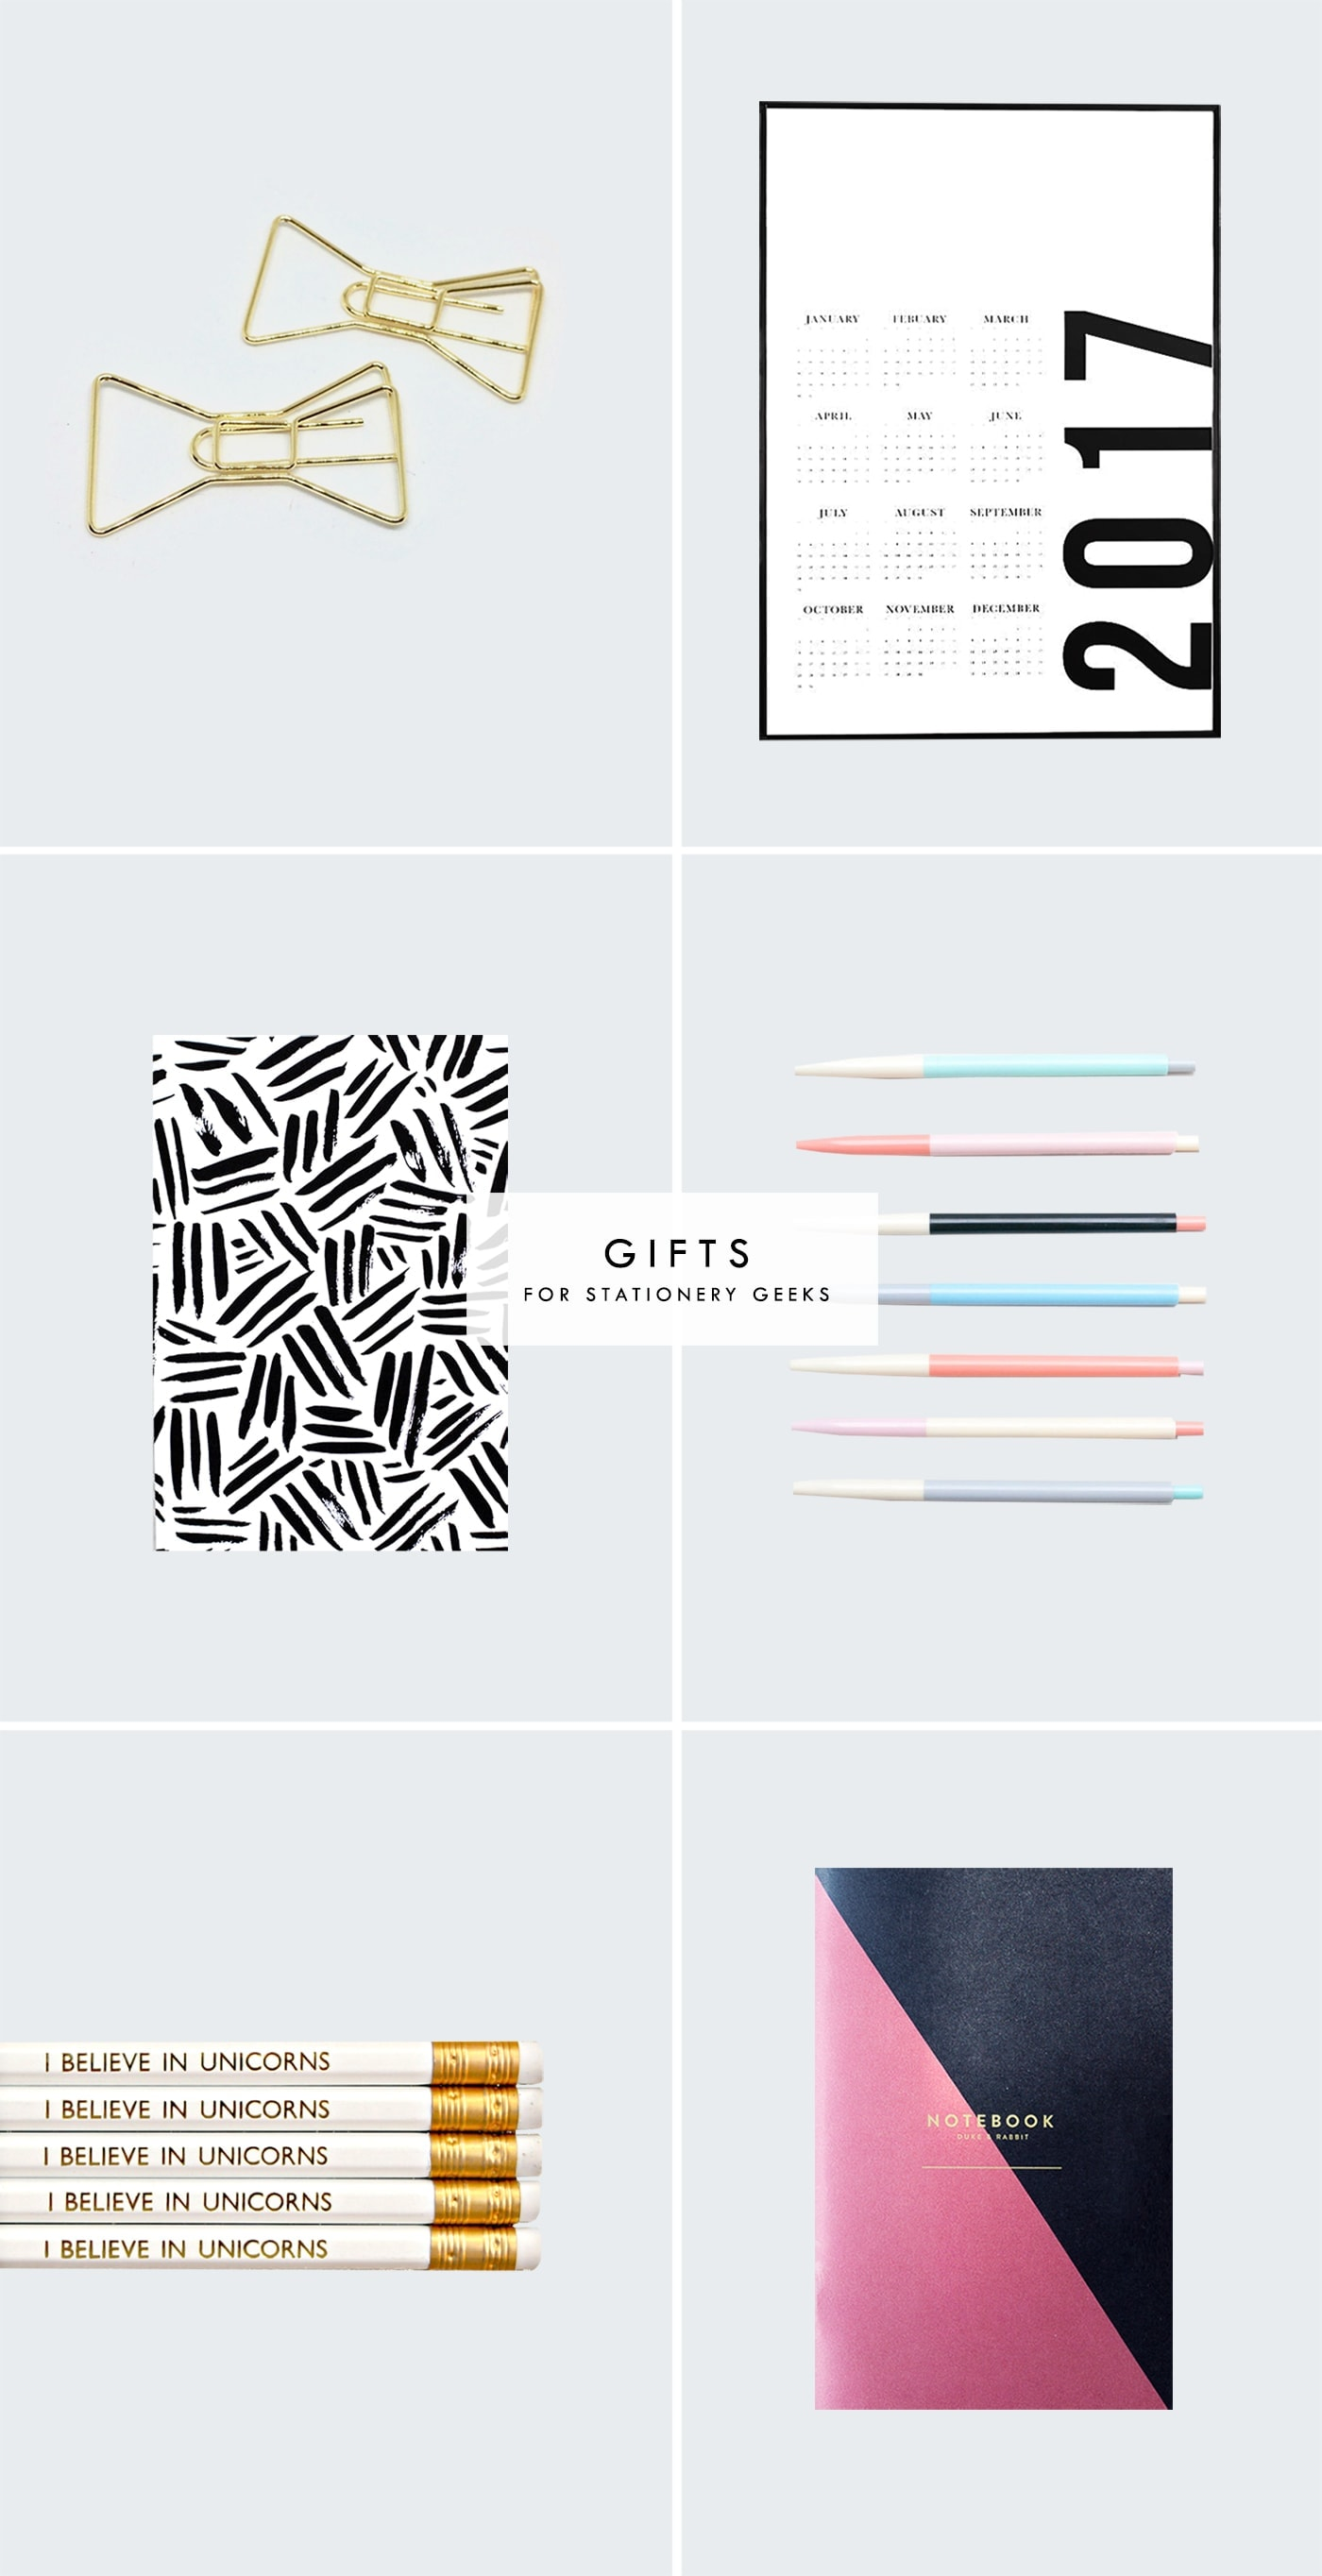 etsy-gift-guides-stationery-geeks